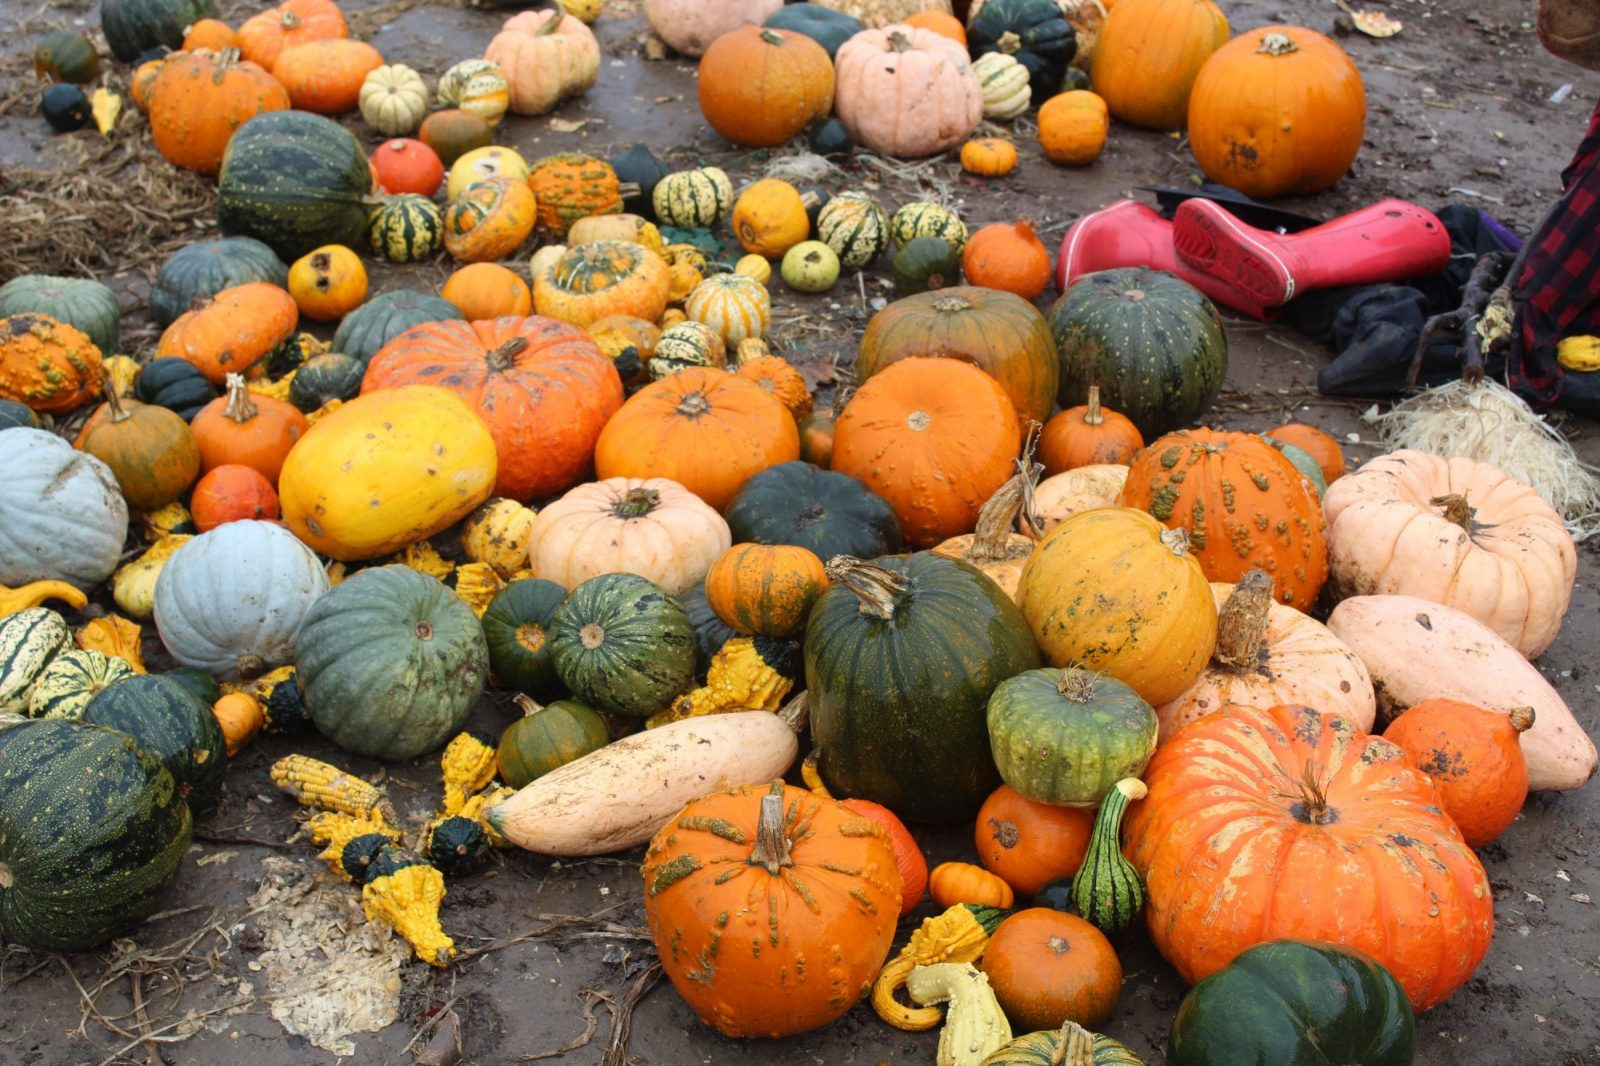 New report – how supermarkets drive food waste on UK farms